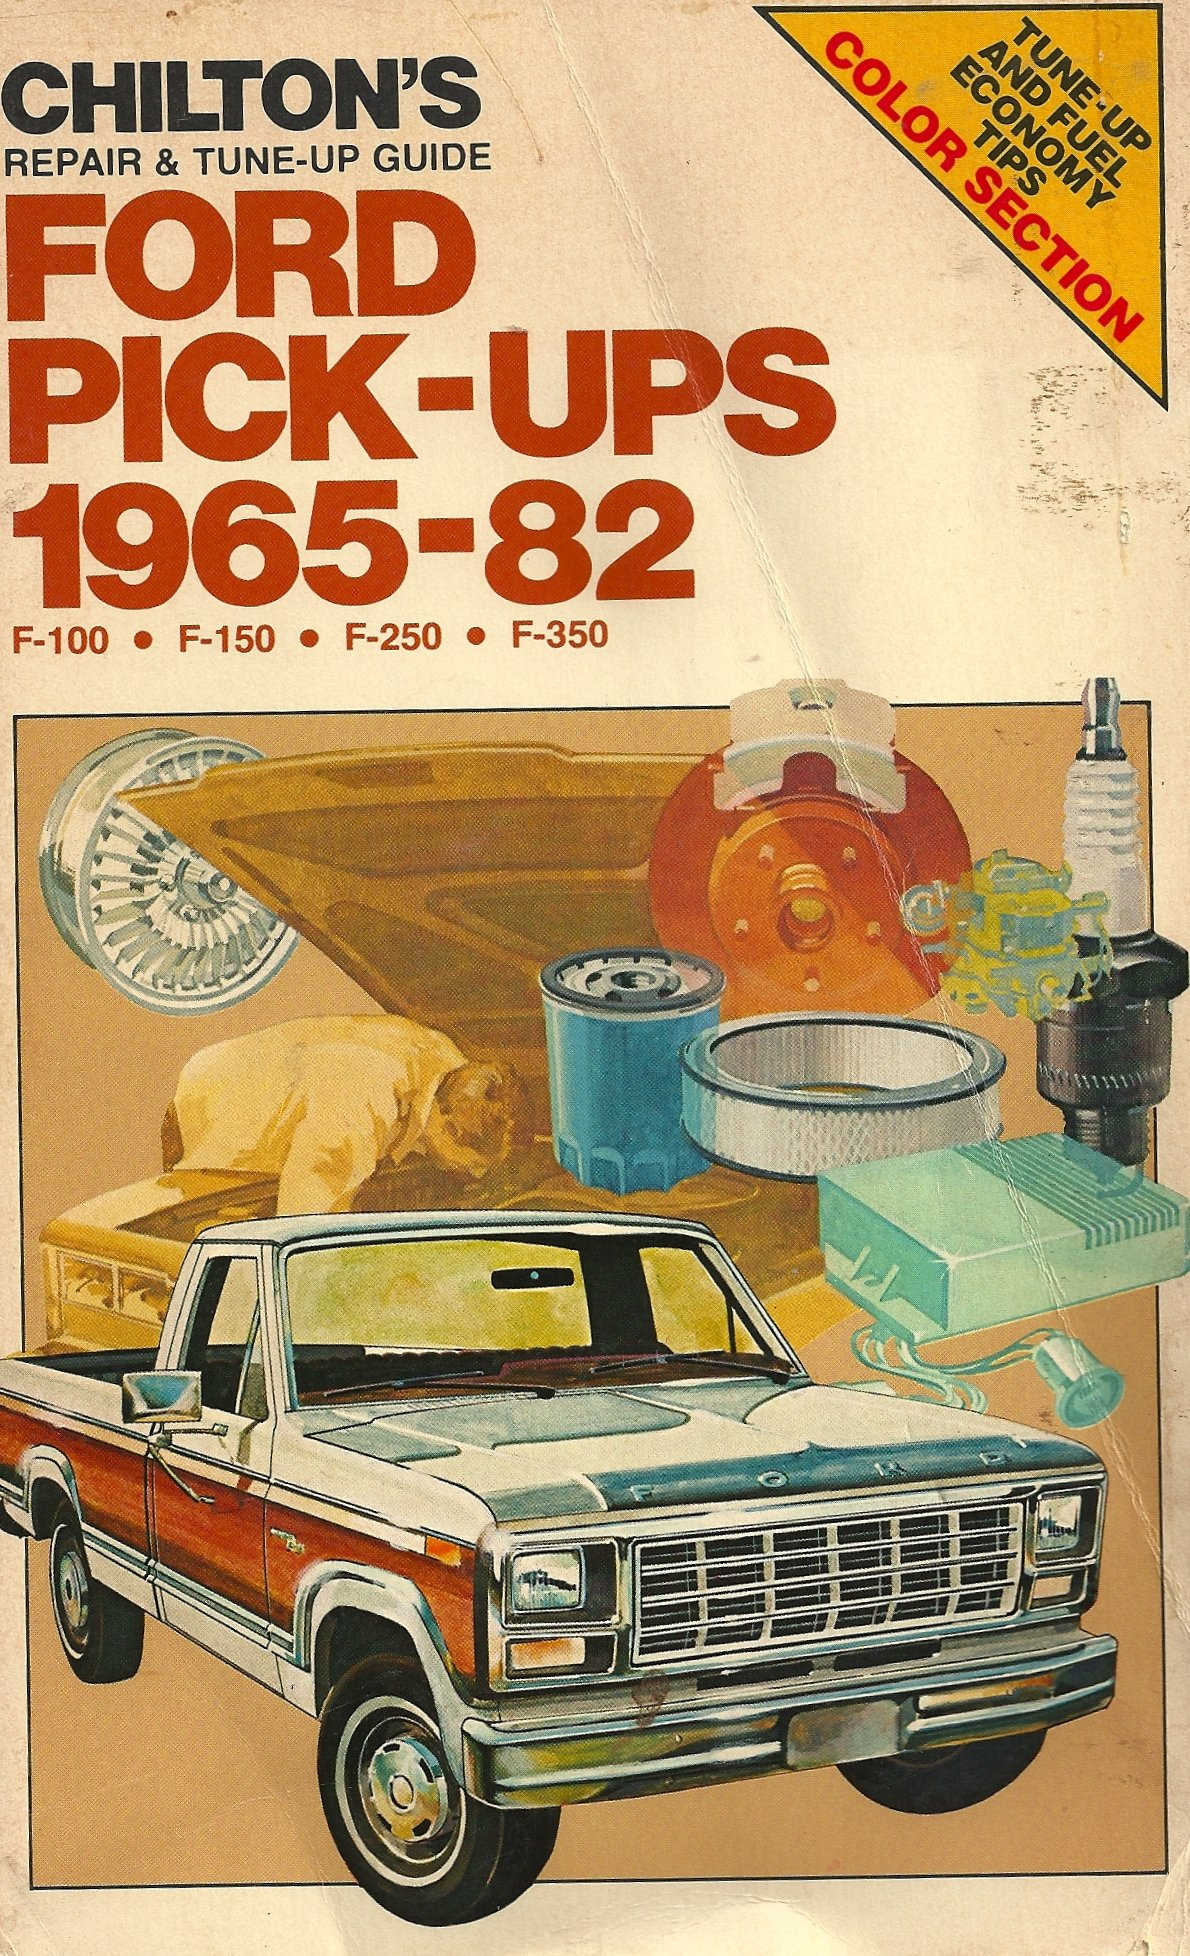 chilton s repair tune up guide ford pick ups 1965 82 f 100 f rh amazon com  1986 ford f250 repair manual pdf ford f250 repair manual online free